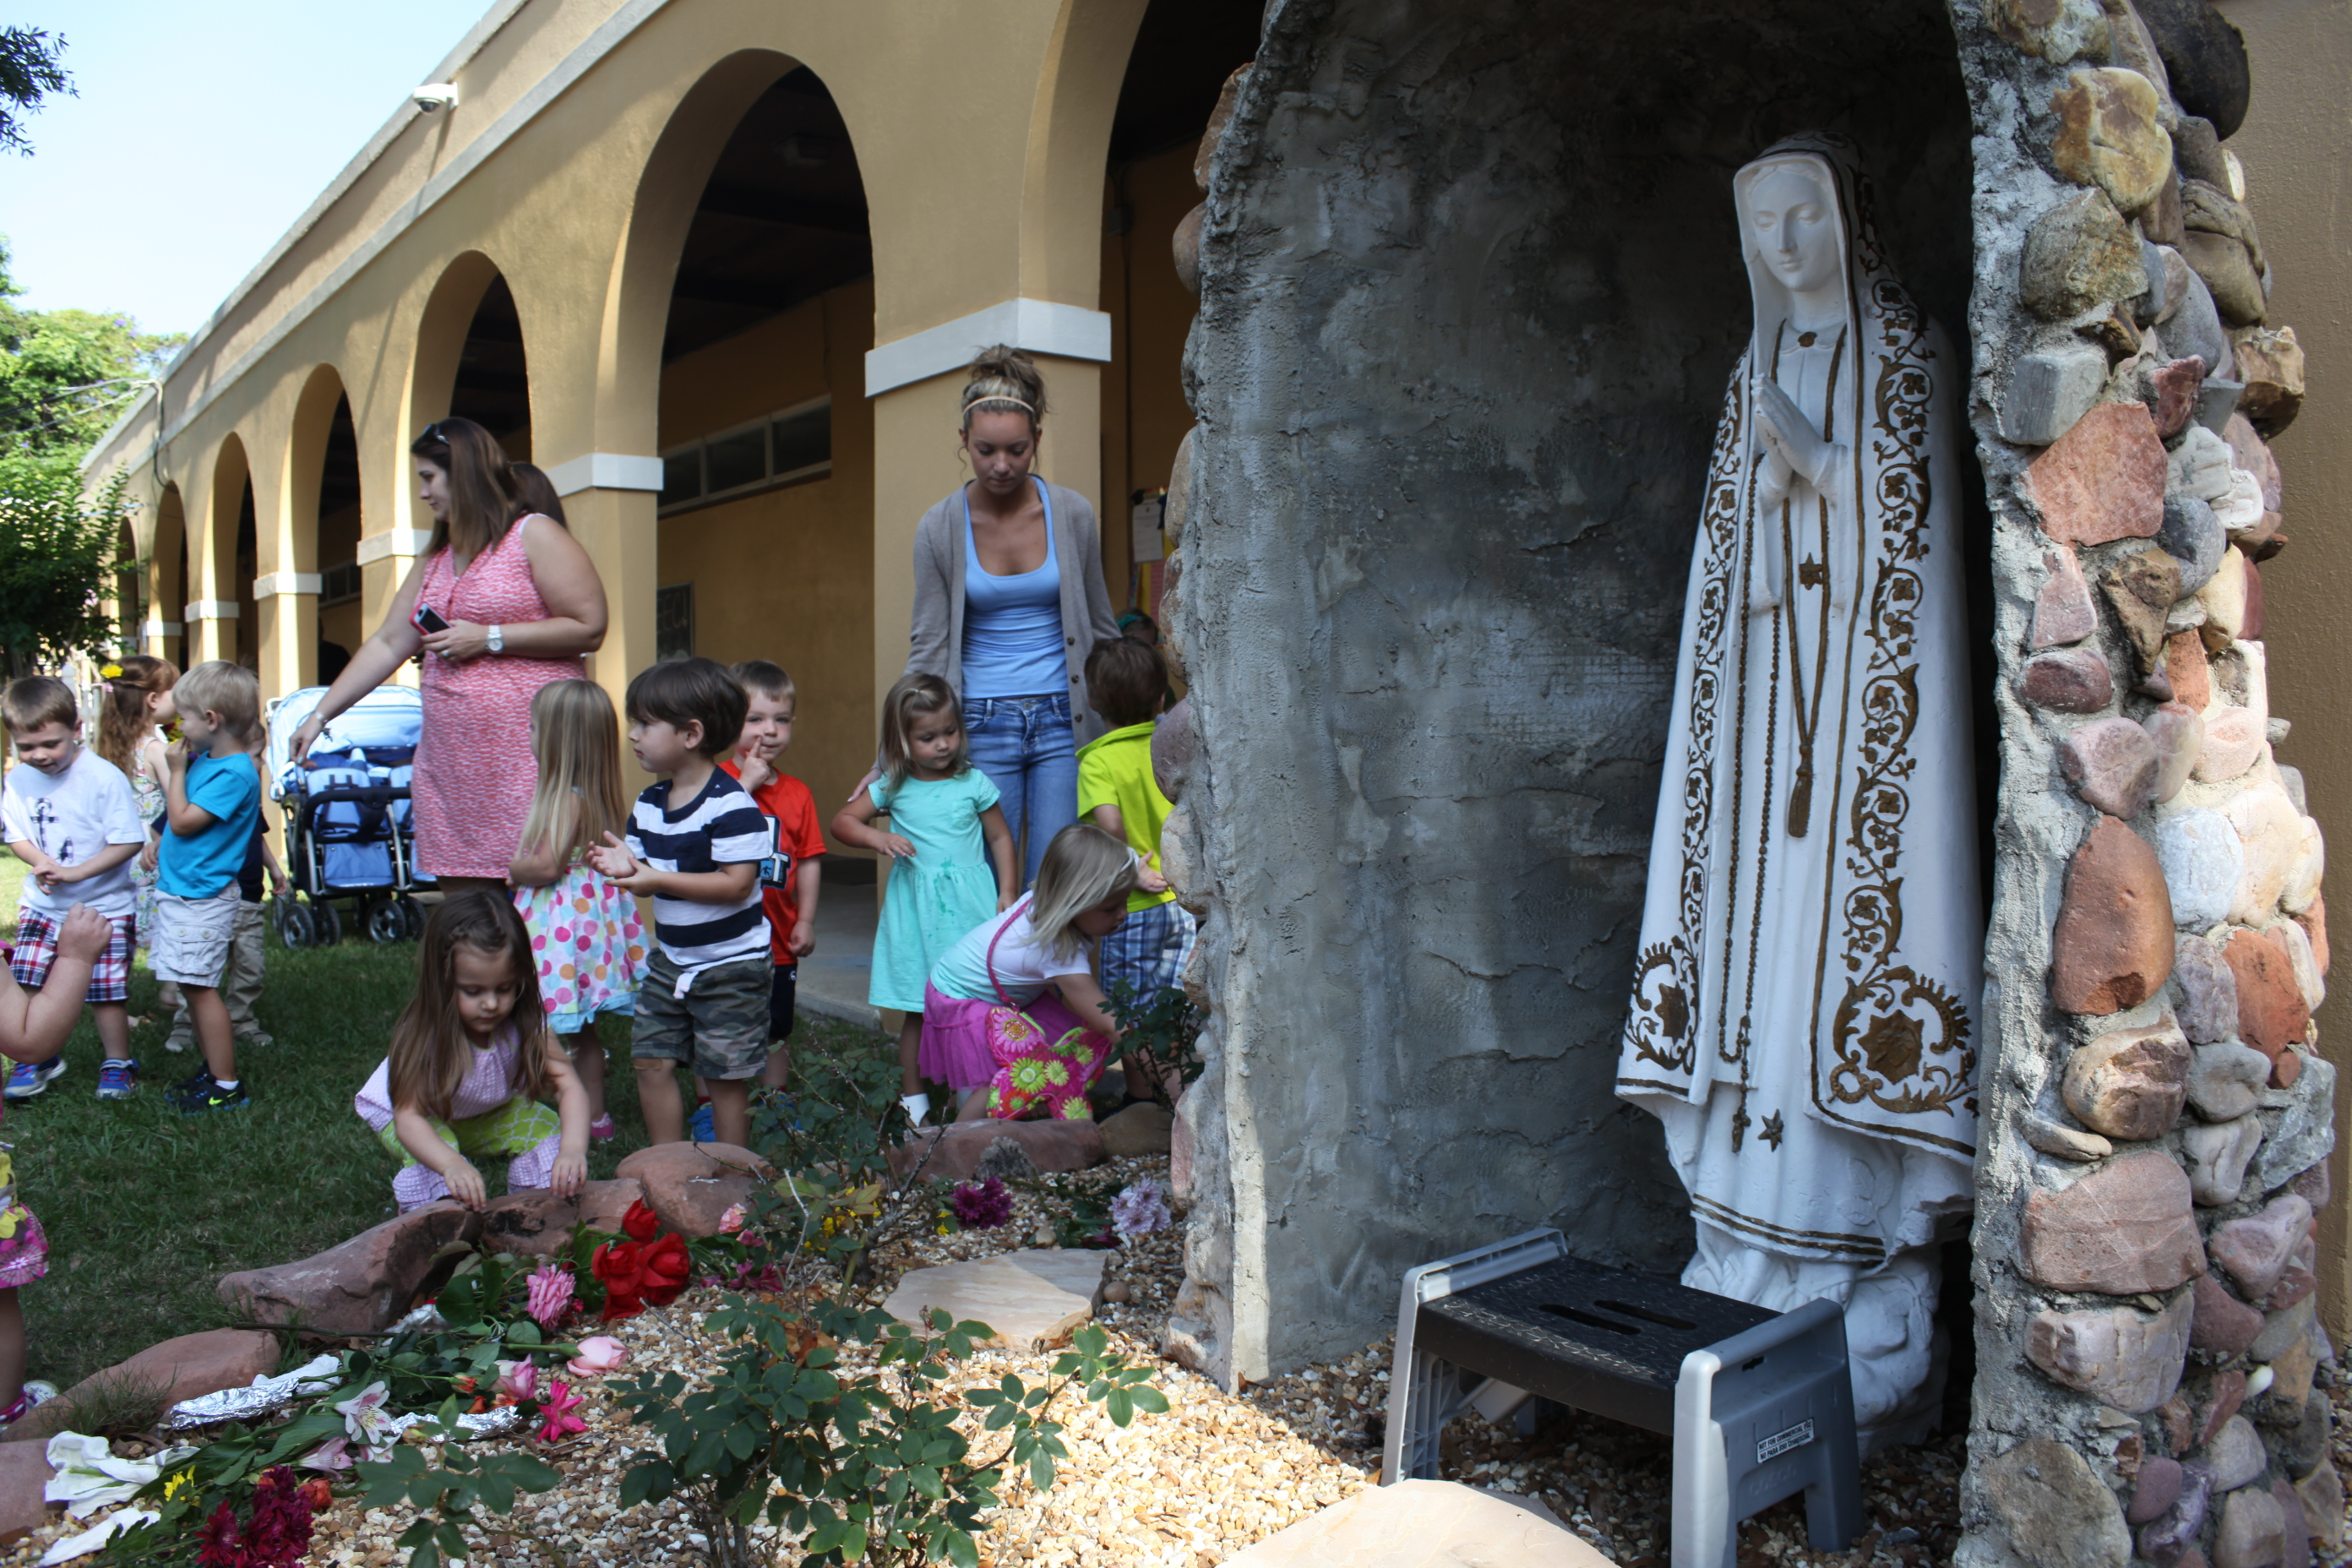 Preschool students at Cathedral Parish Early Education Center in St. Augustine crowned Mother Mary with flowers on Monday, May 11 at the school.